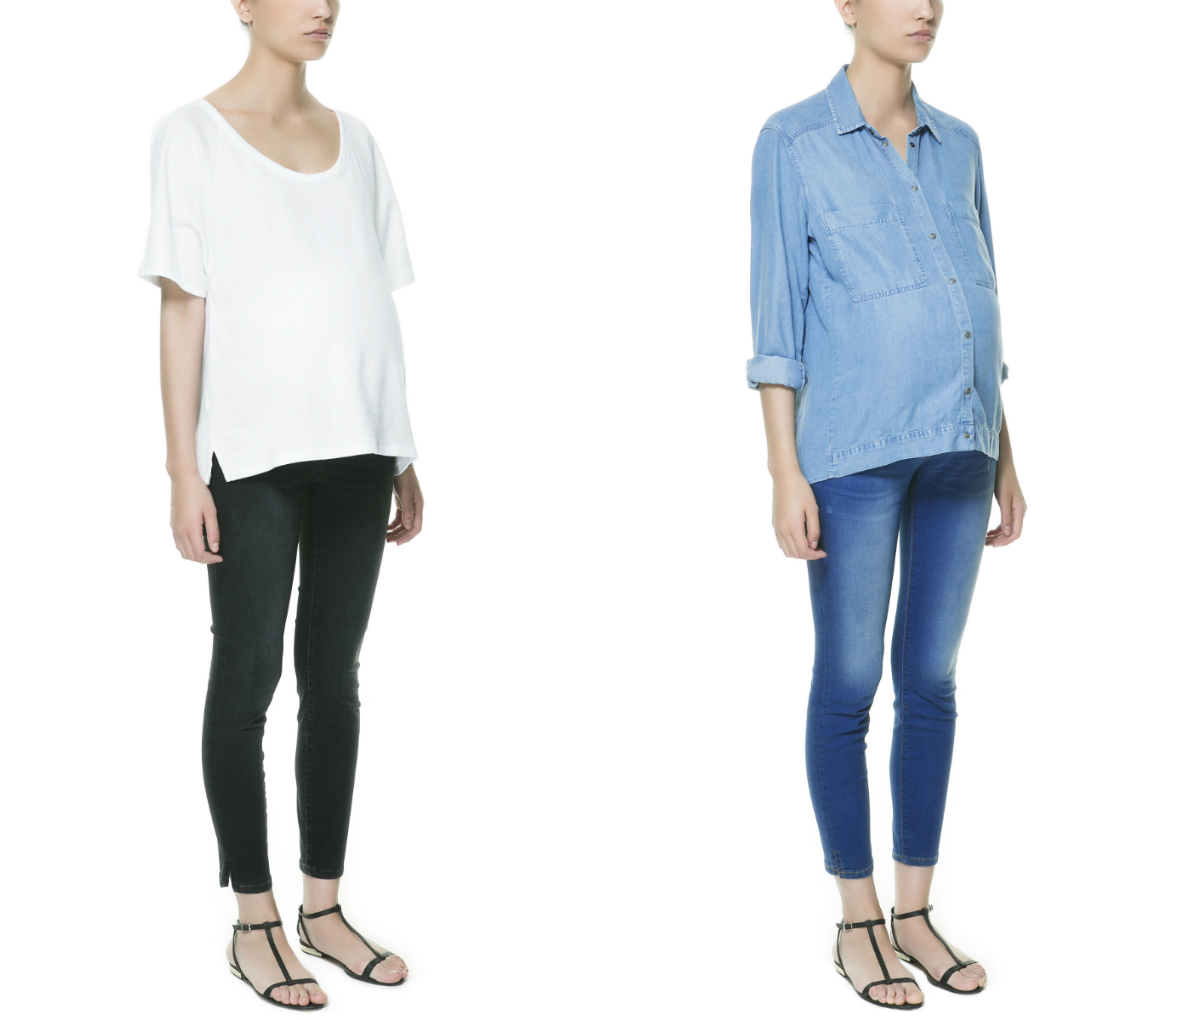 Attention Pregnant Shoppers Zara Adds Maternity Section To Website Stylecaster